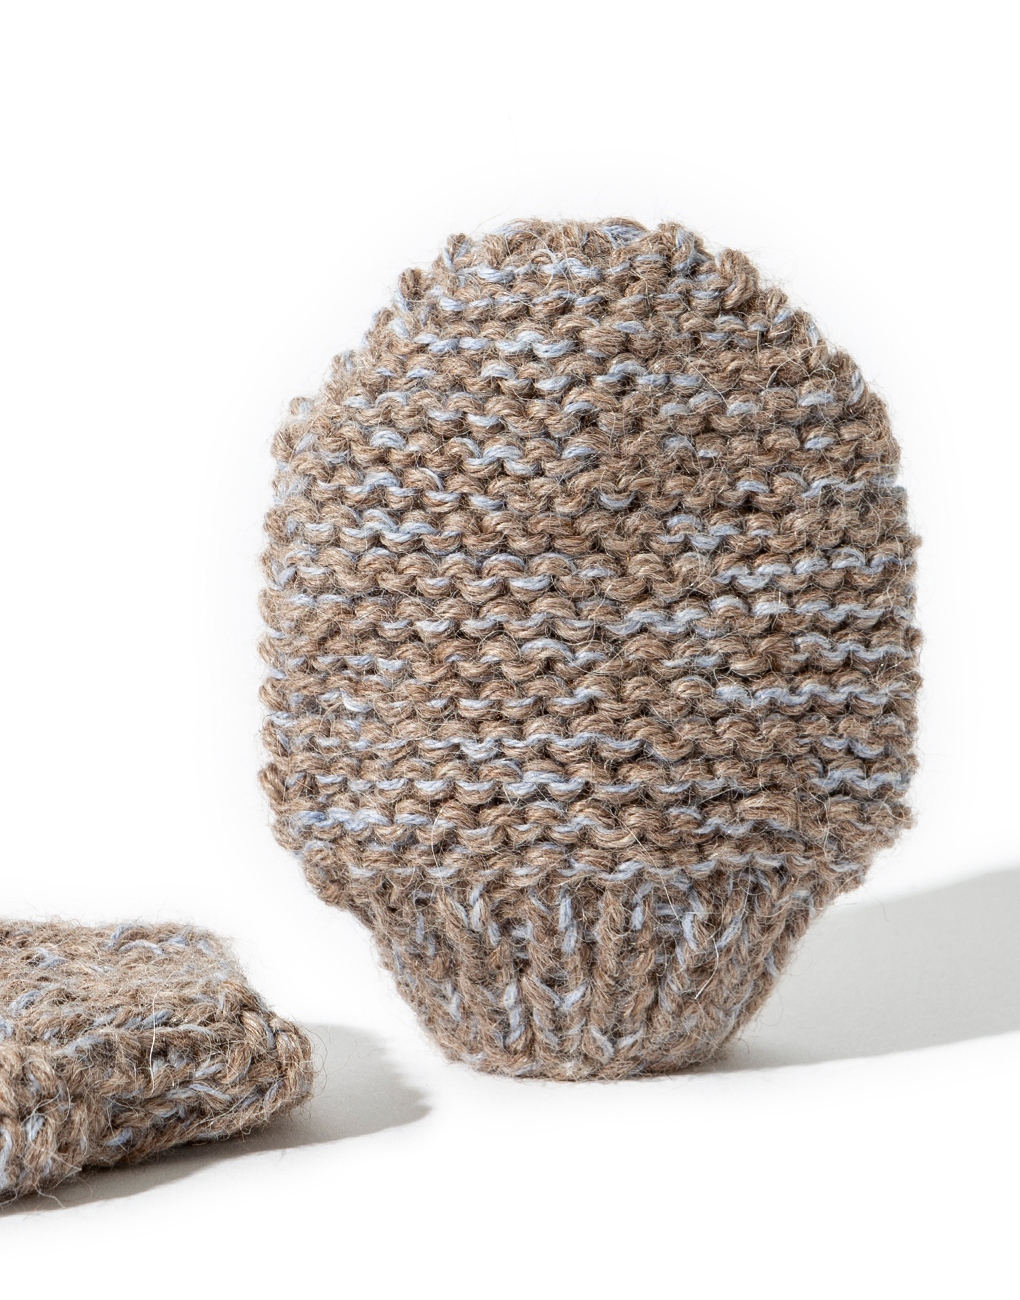 Knitted-Baby-Mittens-Gray-2-{The-Little-Market}.jpg